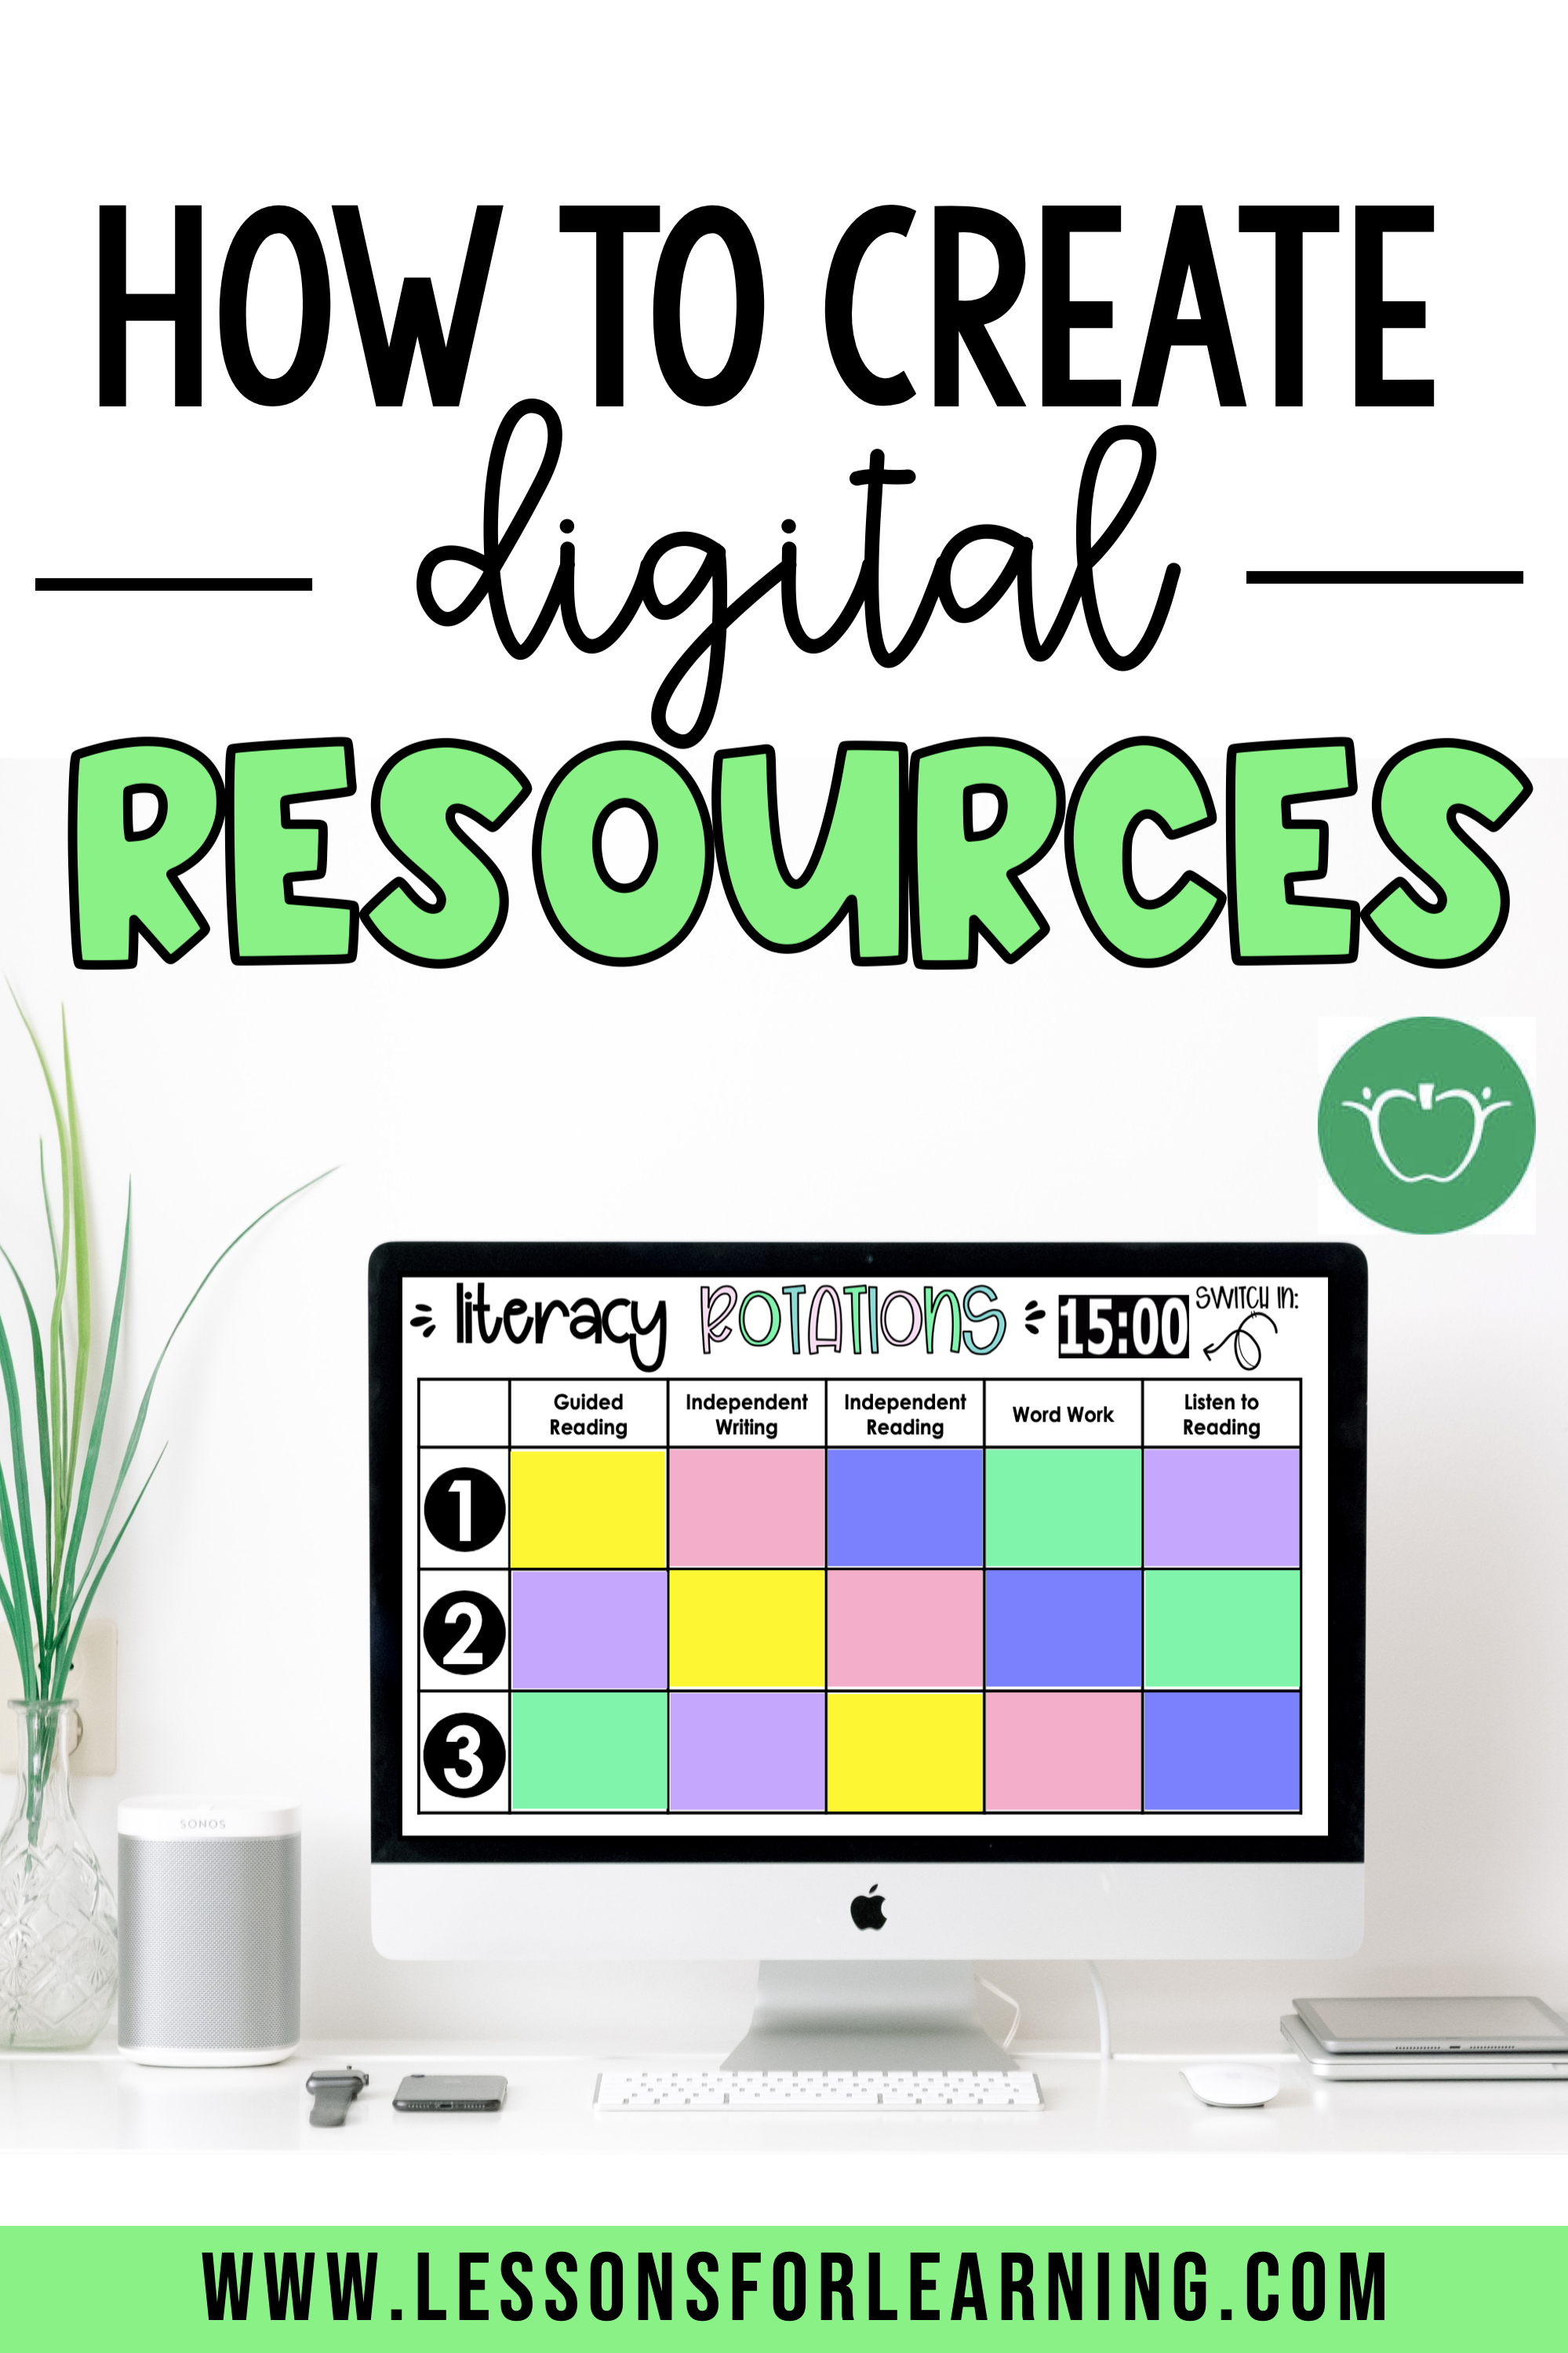 How to Create Digital Resources - Lessons for Learning